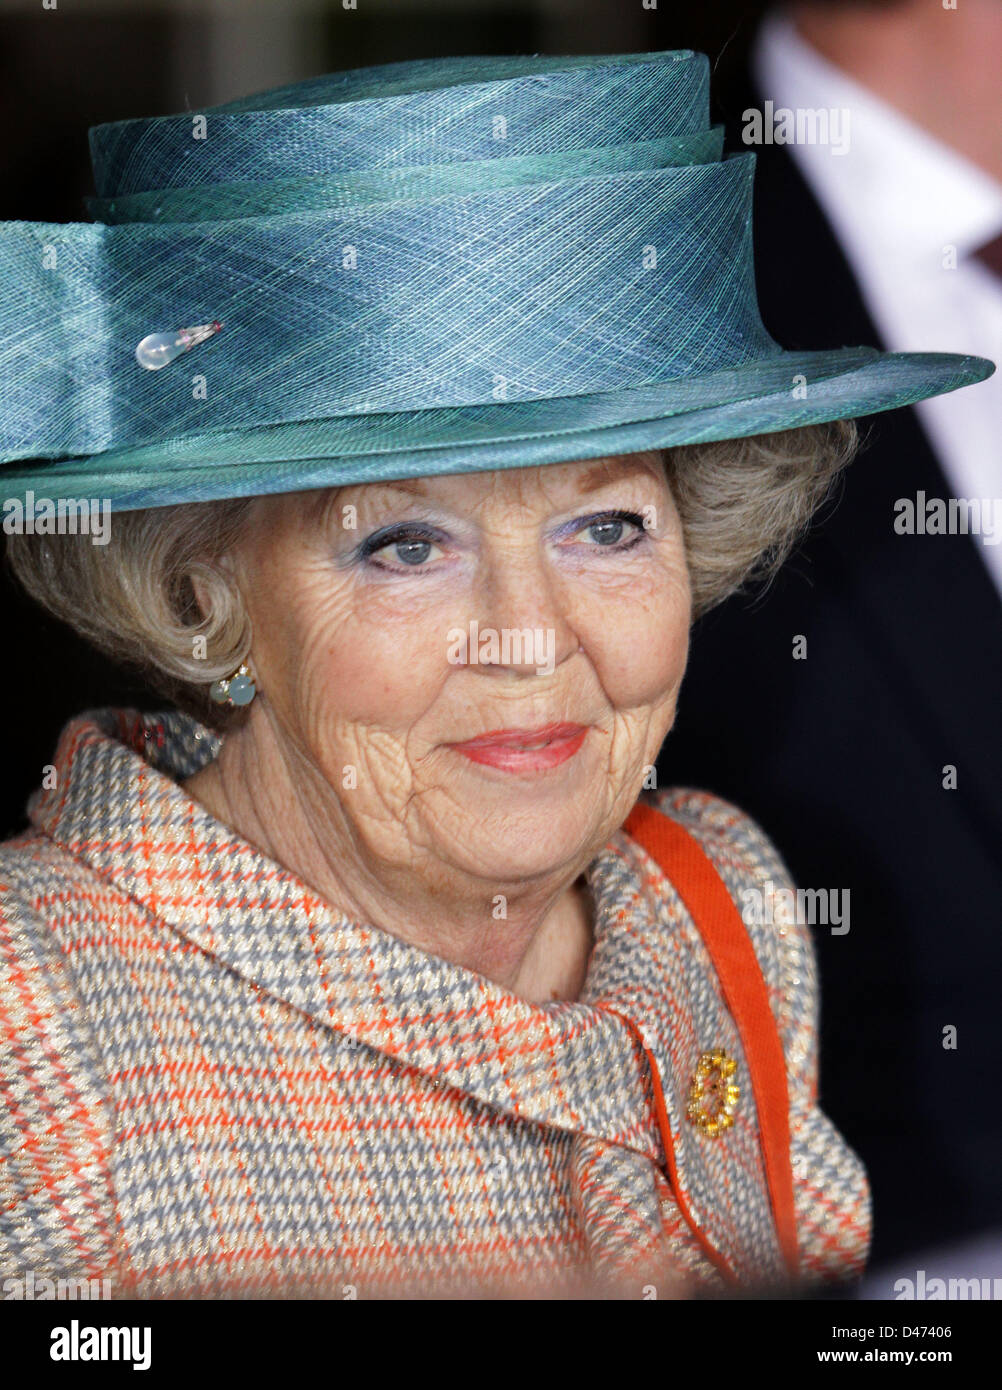 Dutch Queen Beatrix attends the last day of the The Hague Global Child Labour Conference in The Hague, Netherlands, - Stock Image